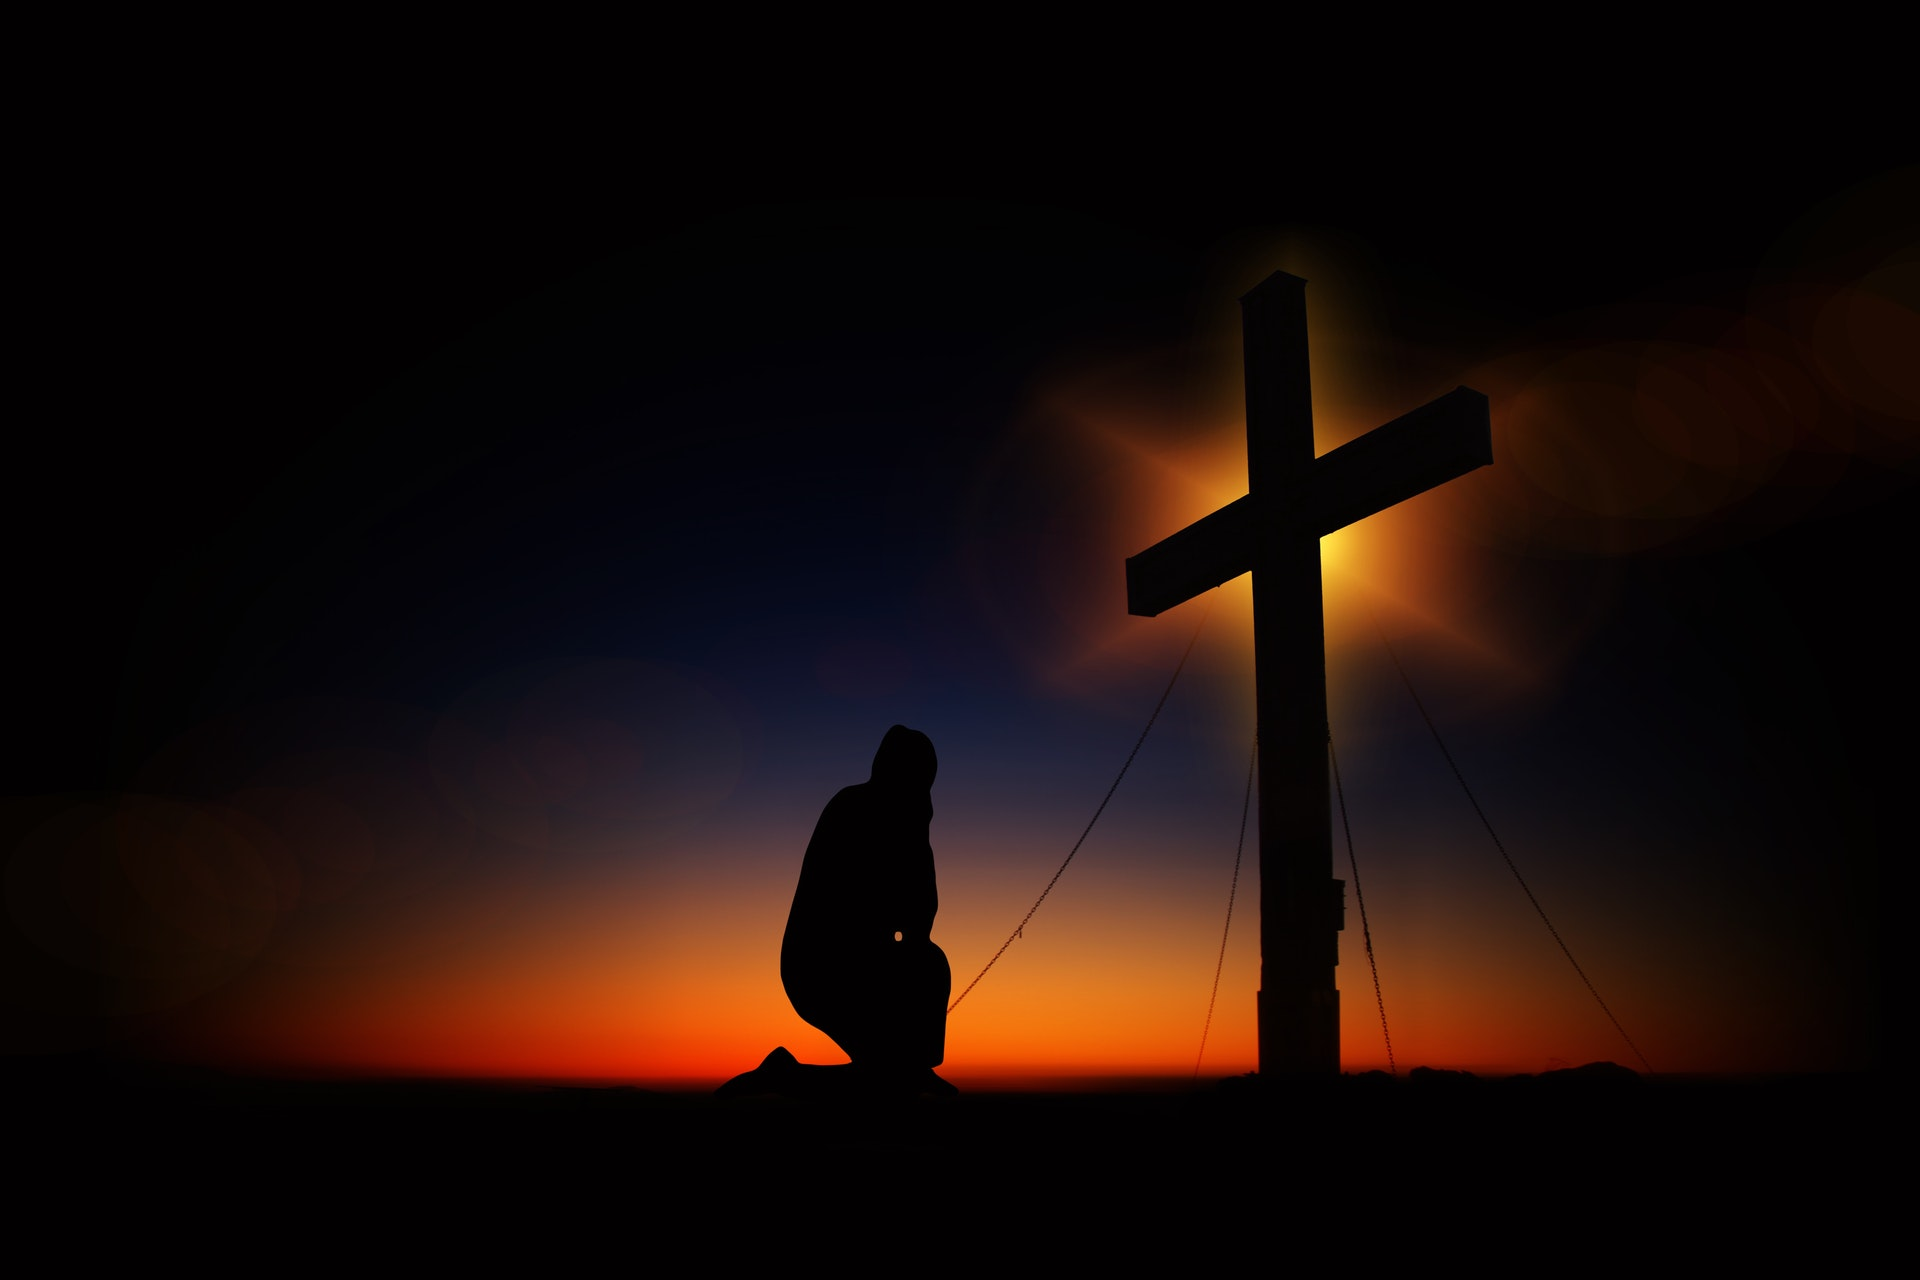 kneeling in prayer at cross with prayer music and meditation